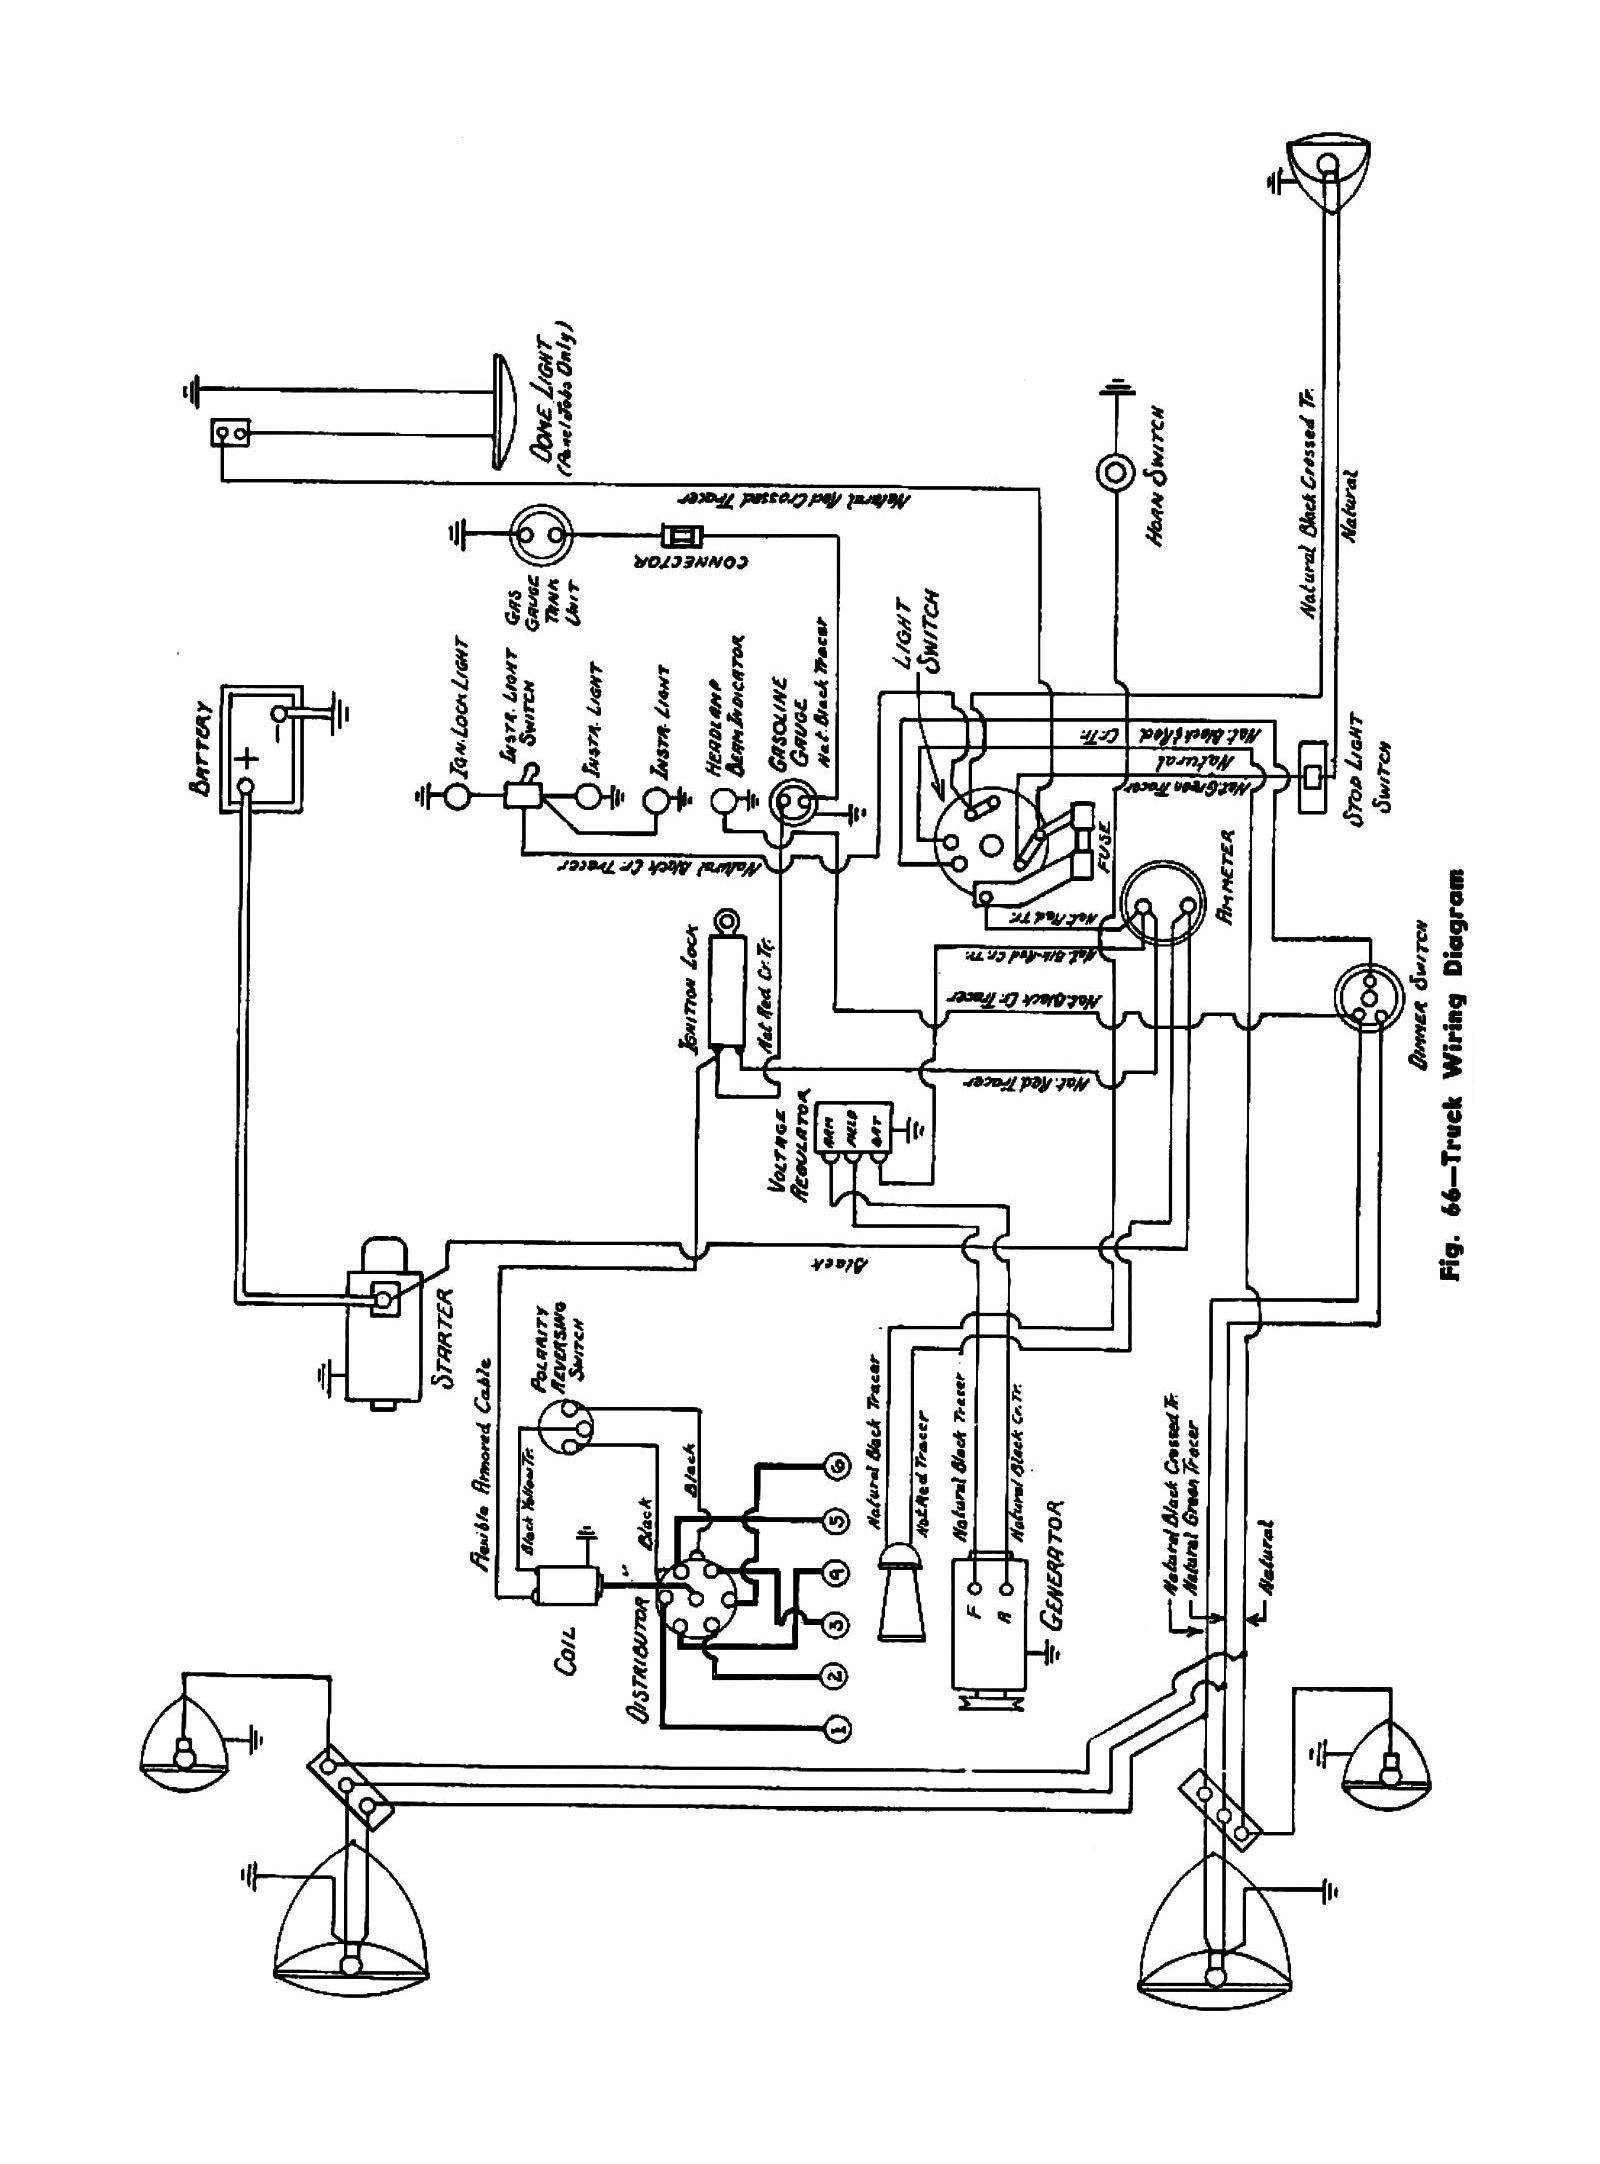 Chevy Wiring diagrams on small block chevy head torque sequence diagram, 235 chevy exhaust manifold diagram, chevy truck starter wiring diagram,